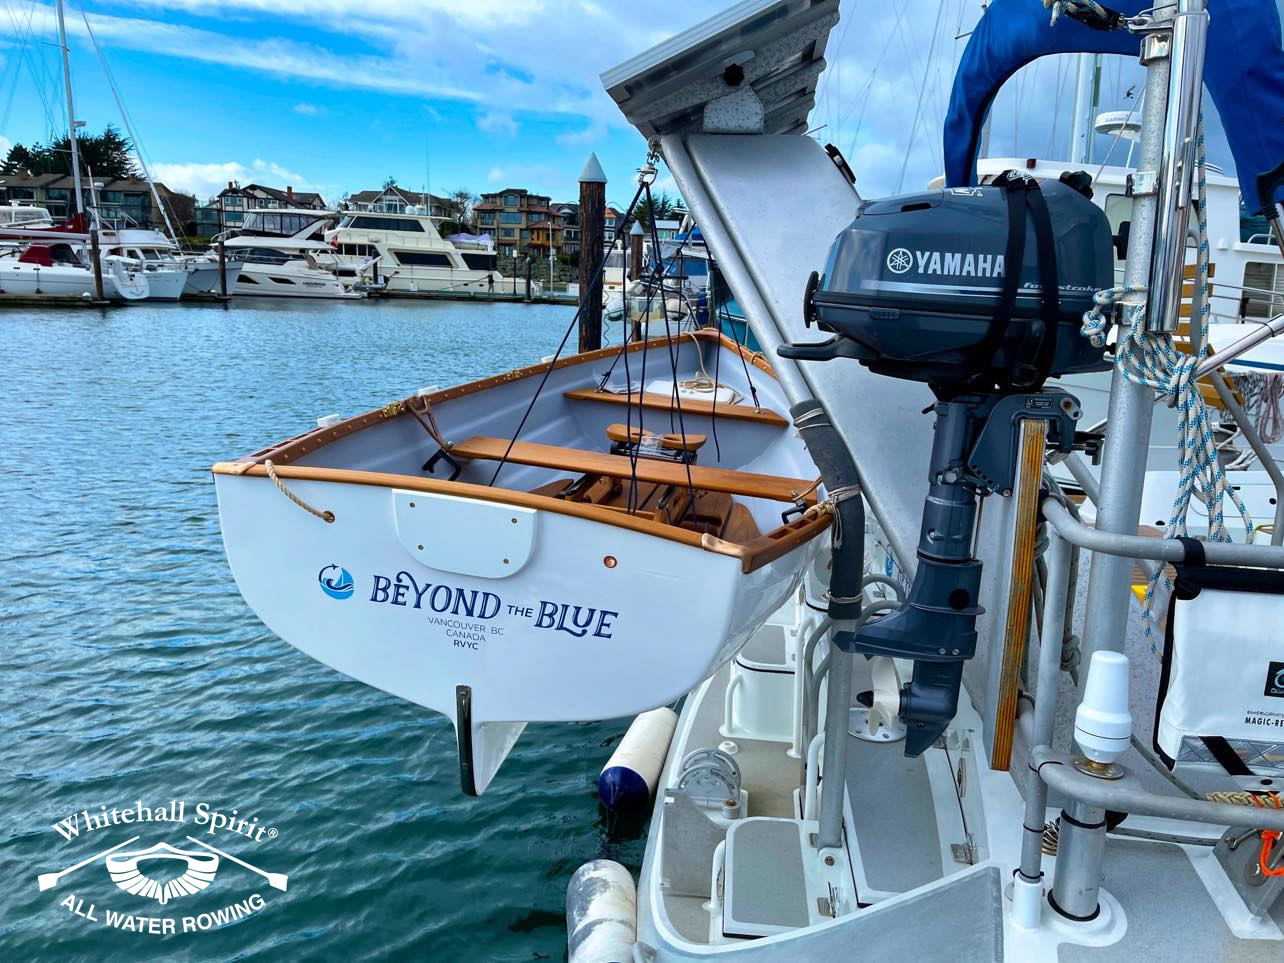 Beyond-the-Blue-boat-owner-David-with-Whitehall-Rowing-and-Sail-5L